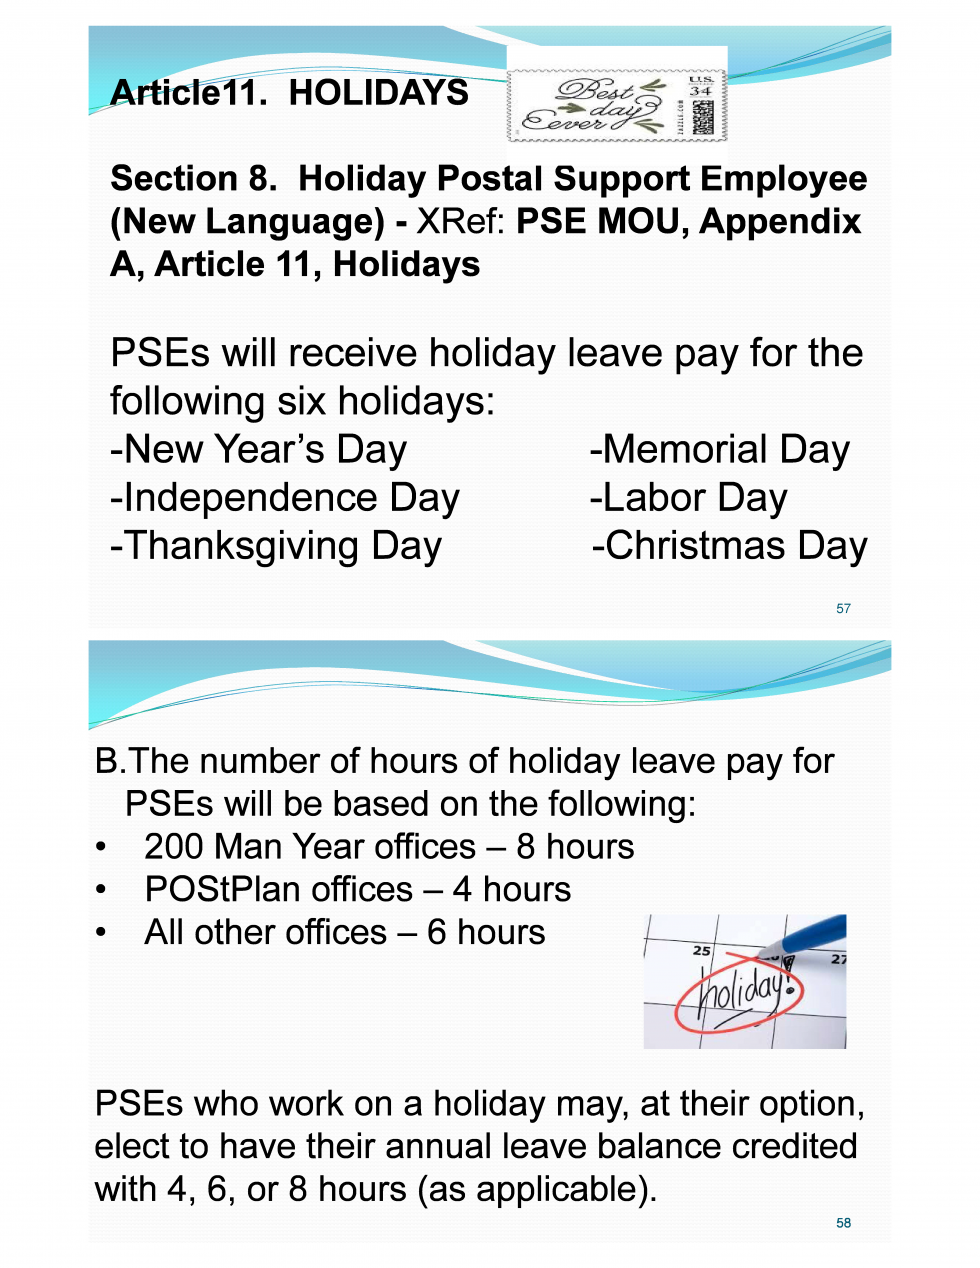 PSE Holiday Leave Pay for Labor Day – 21st Century Postal Worker